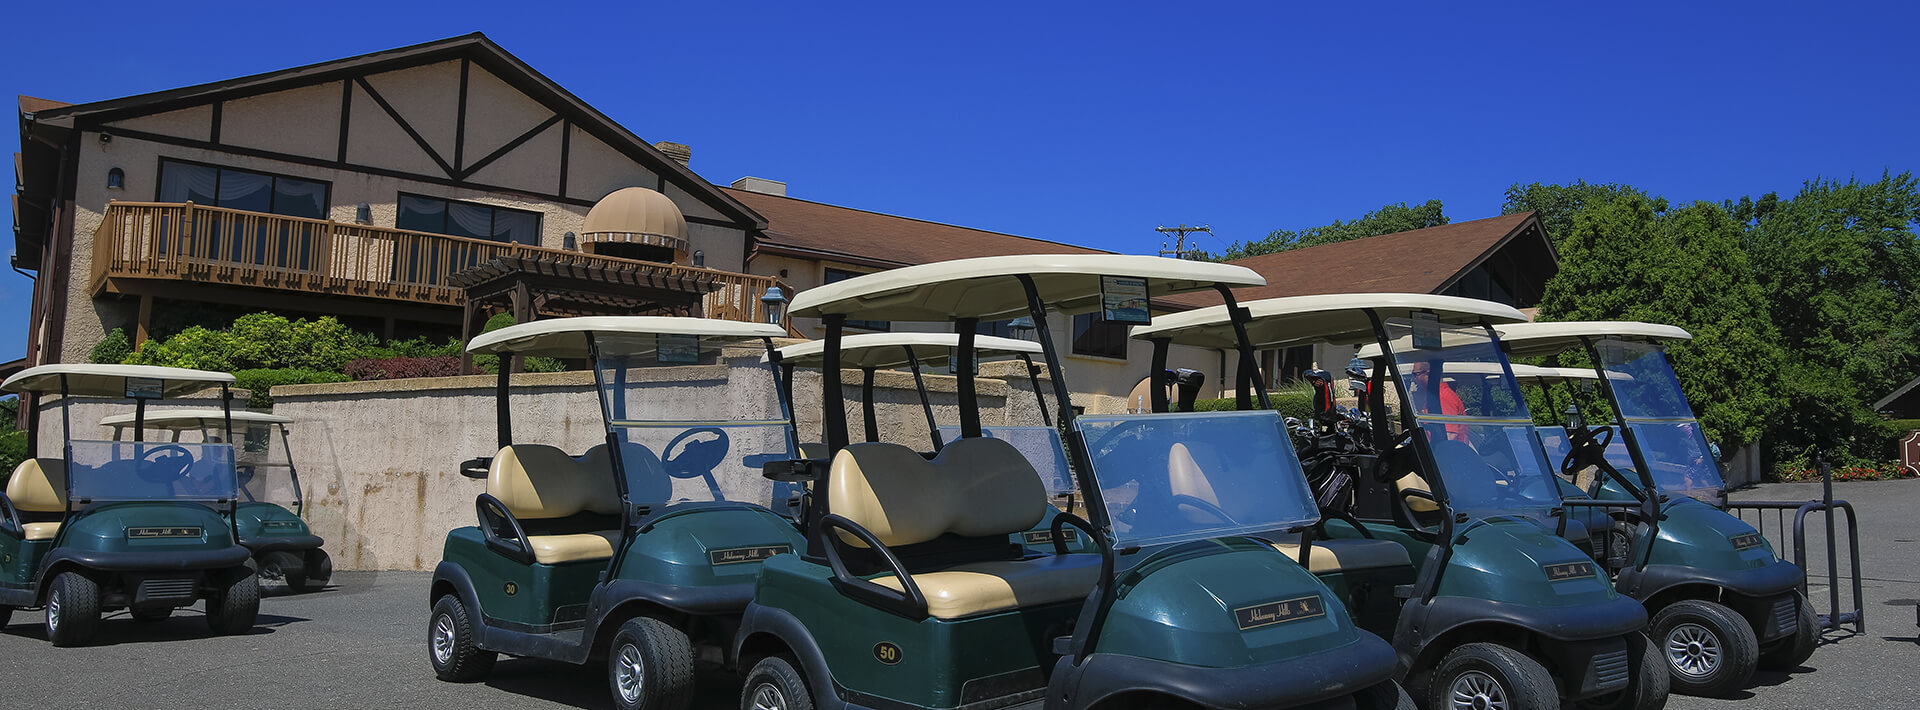 A photo of the Hideaway Hills golf club with parked golf carts